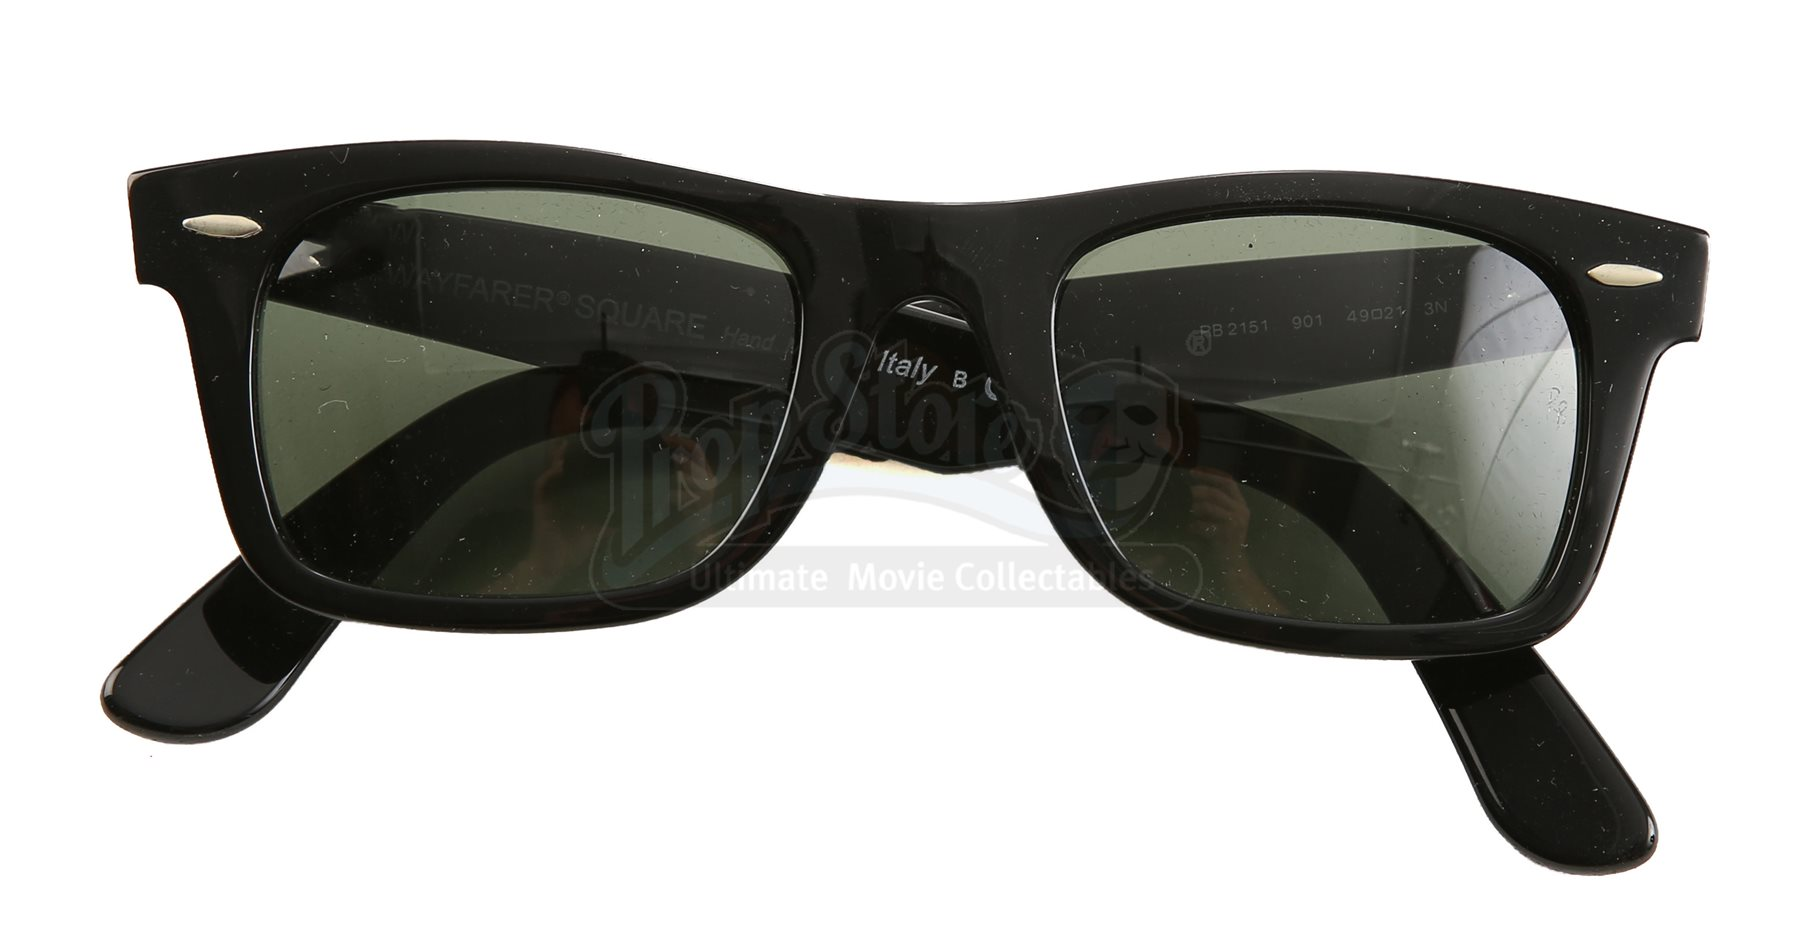 Edward Cullens Sunglasses Current Price - What is an invoice number eyeglasses online store